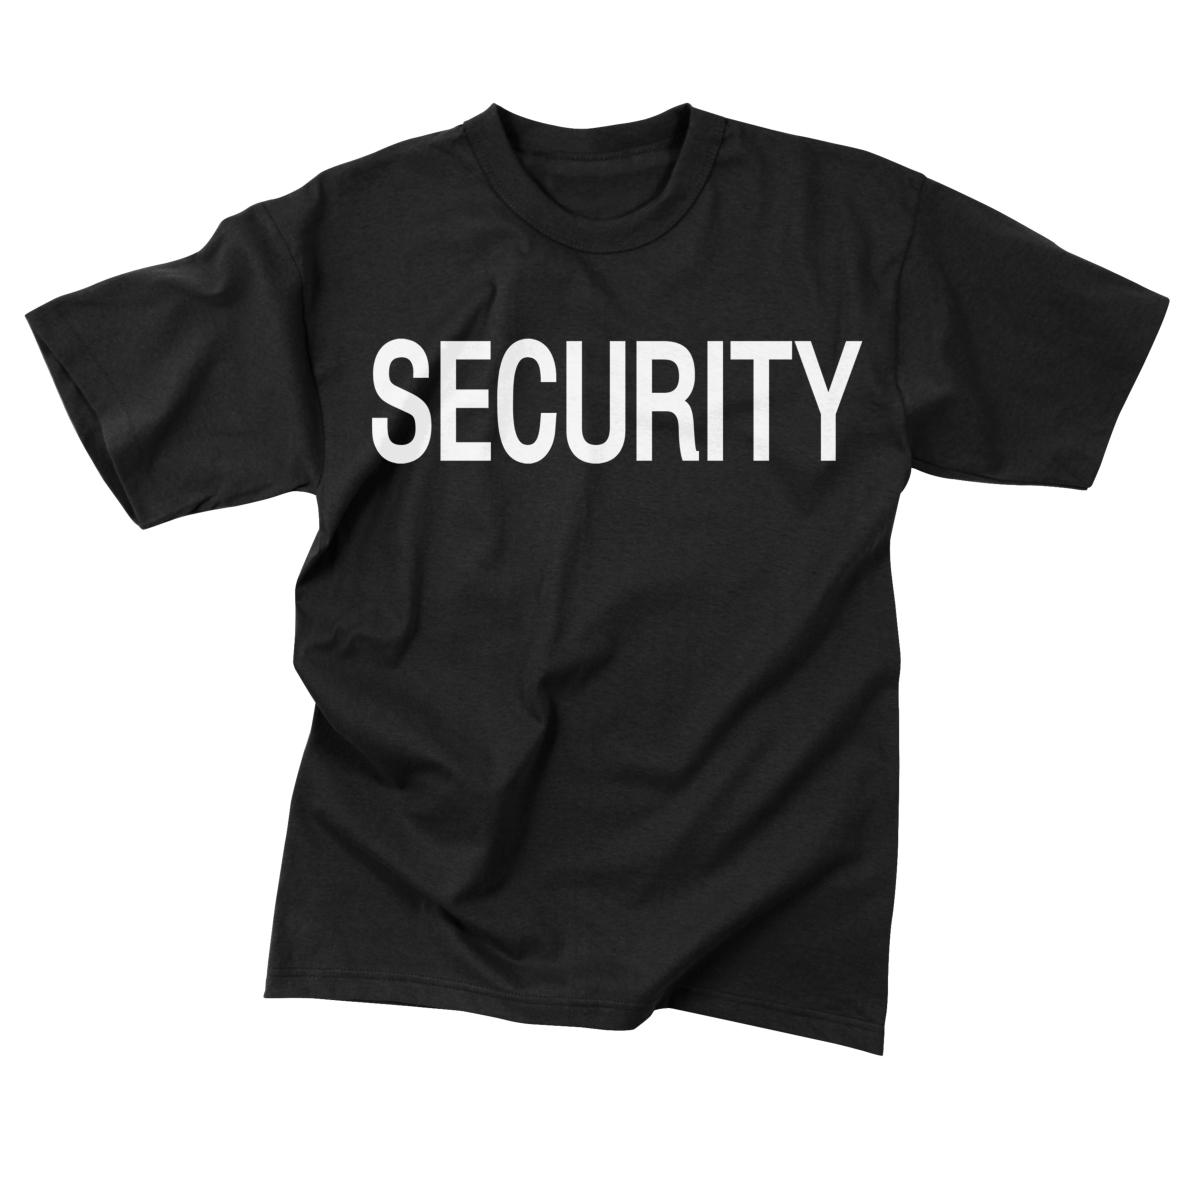 Security Black Official Double-Sided Raid T-Shirts - Walmart.com